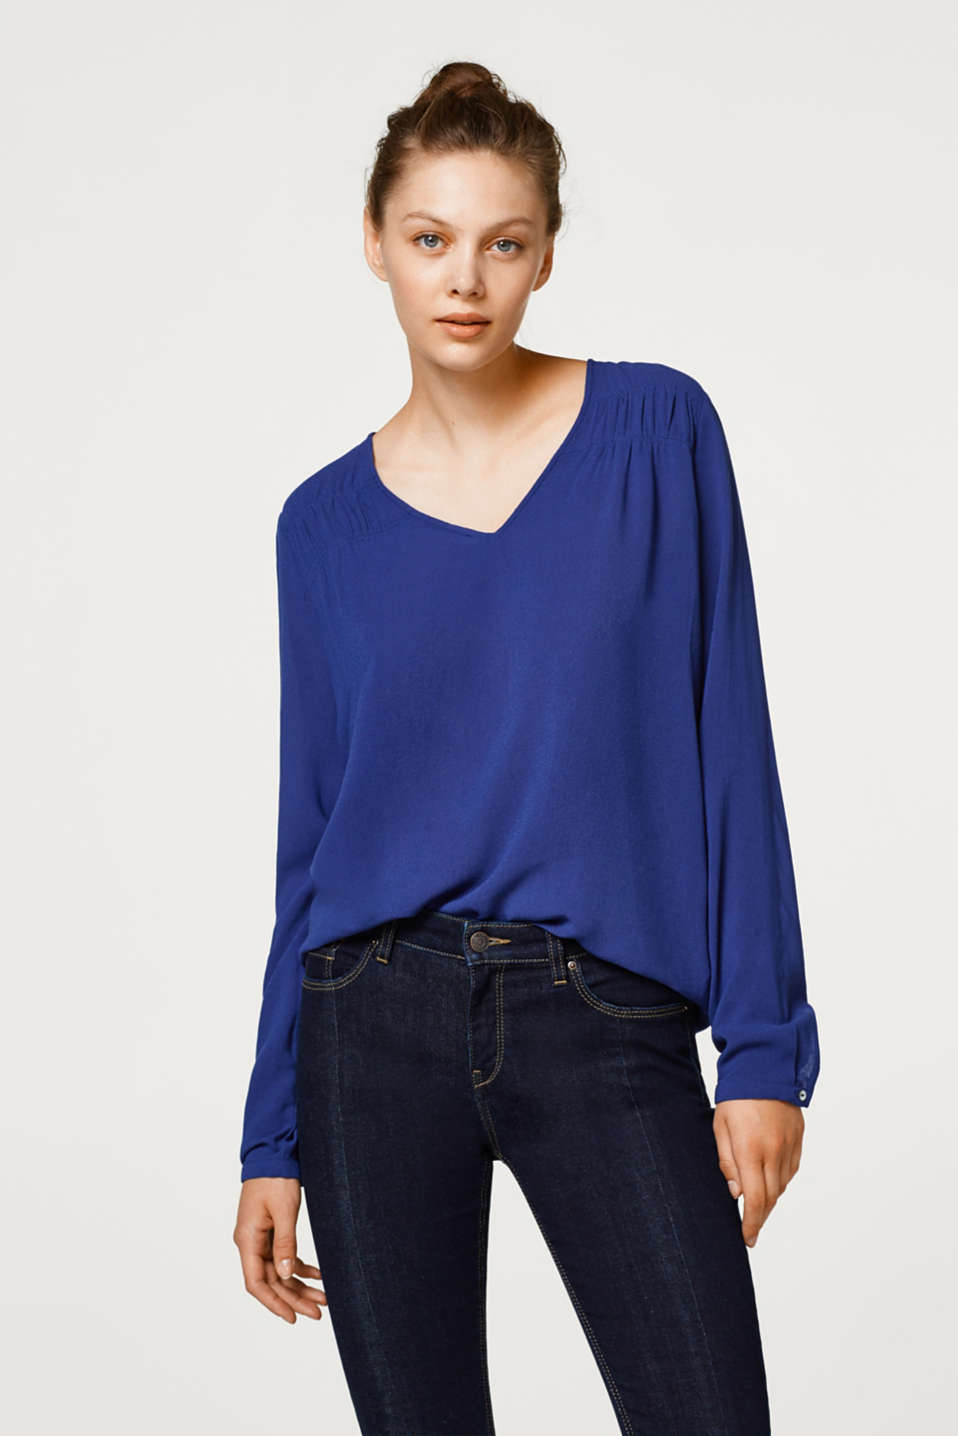 Esprit - Blouse with gathers on the shoulders